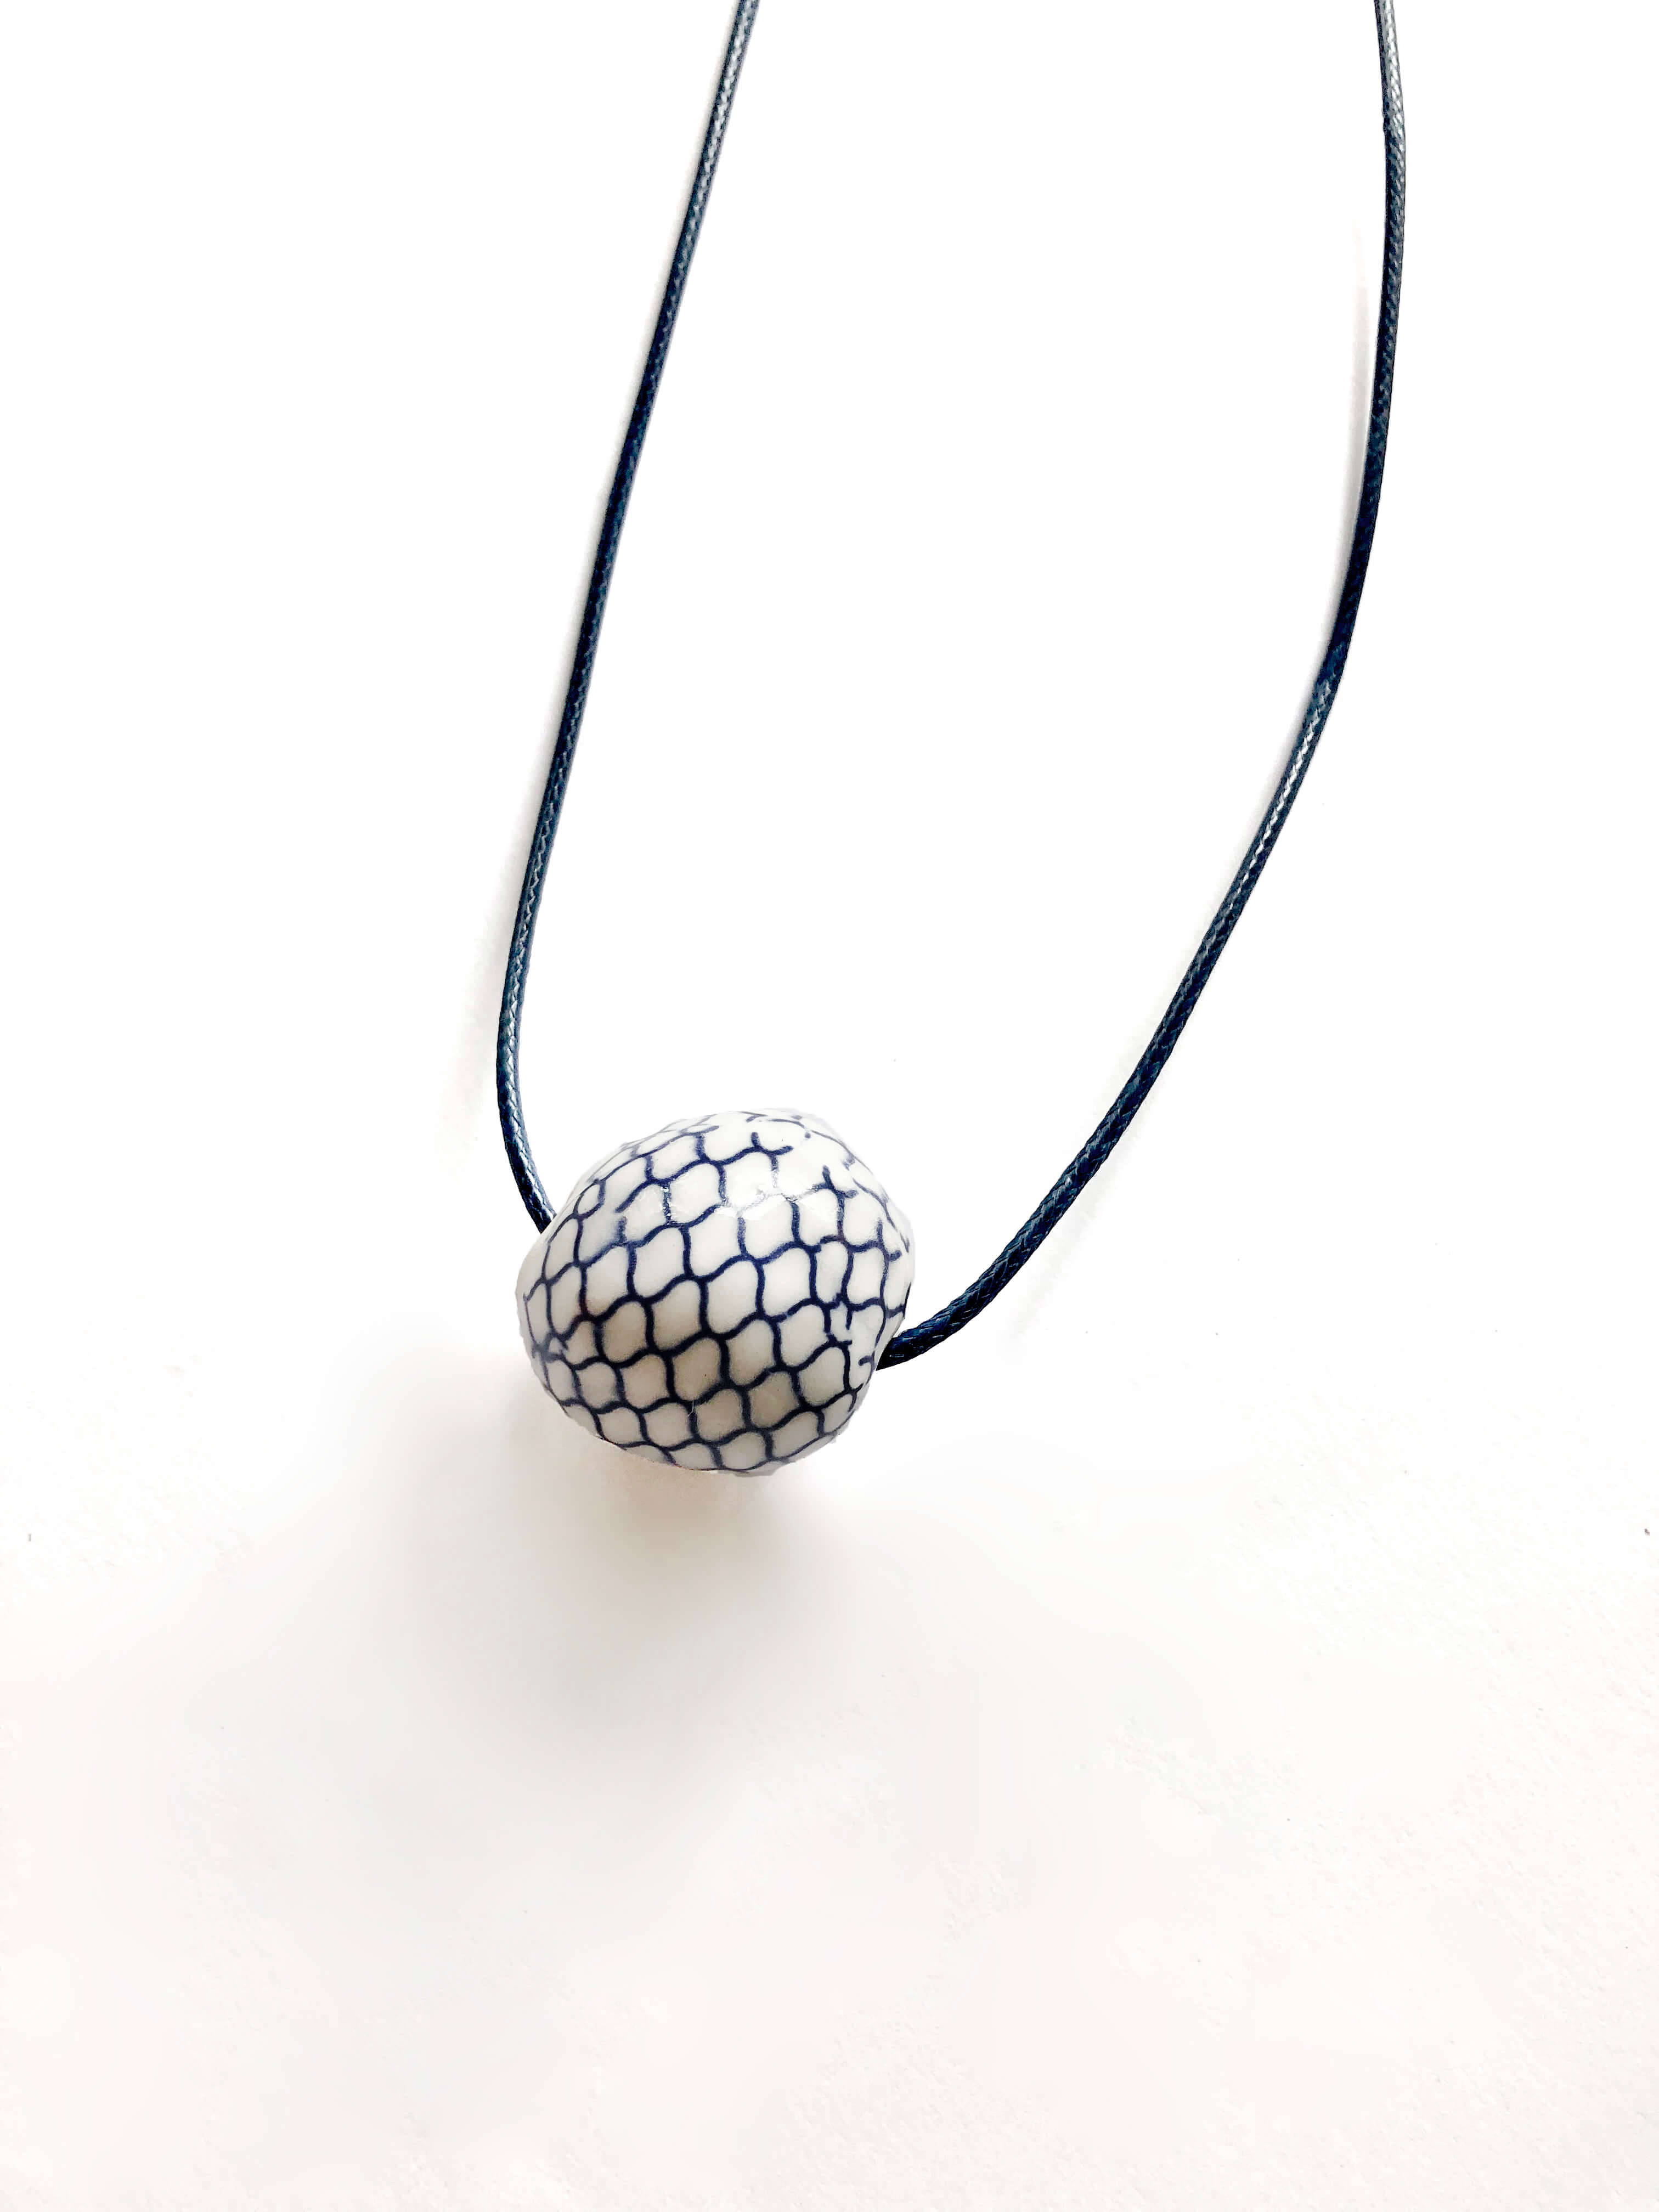 White ceramic necklace with blue fish-scale design